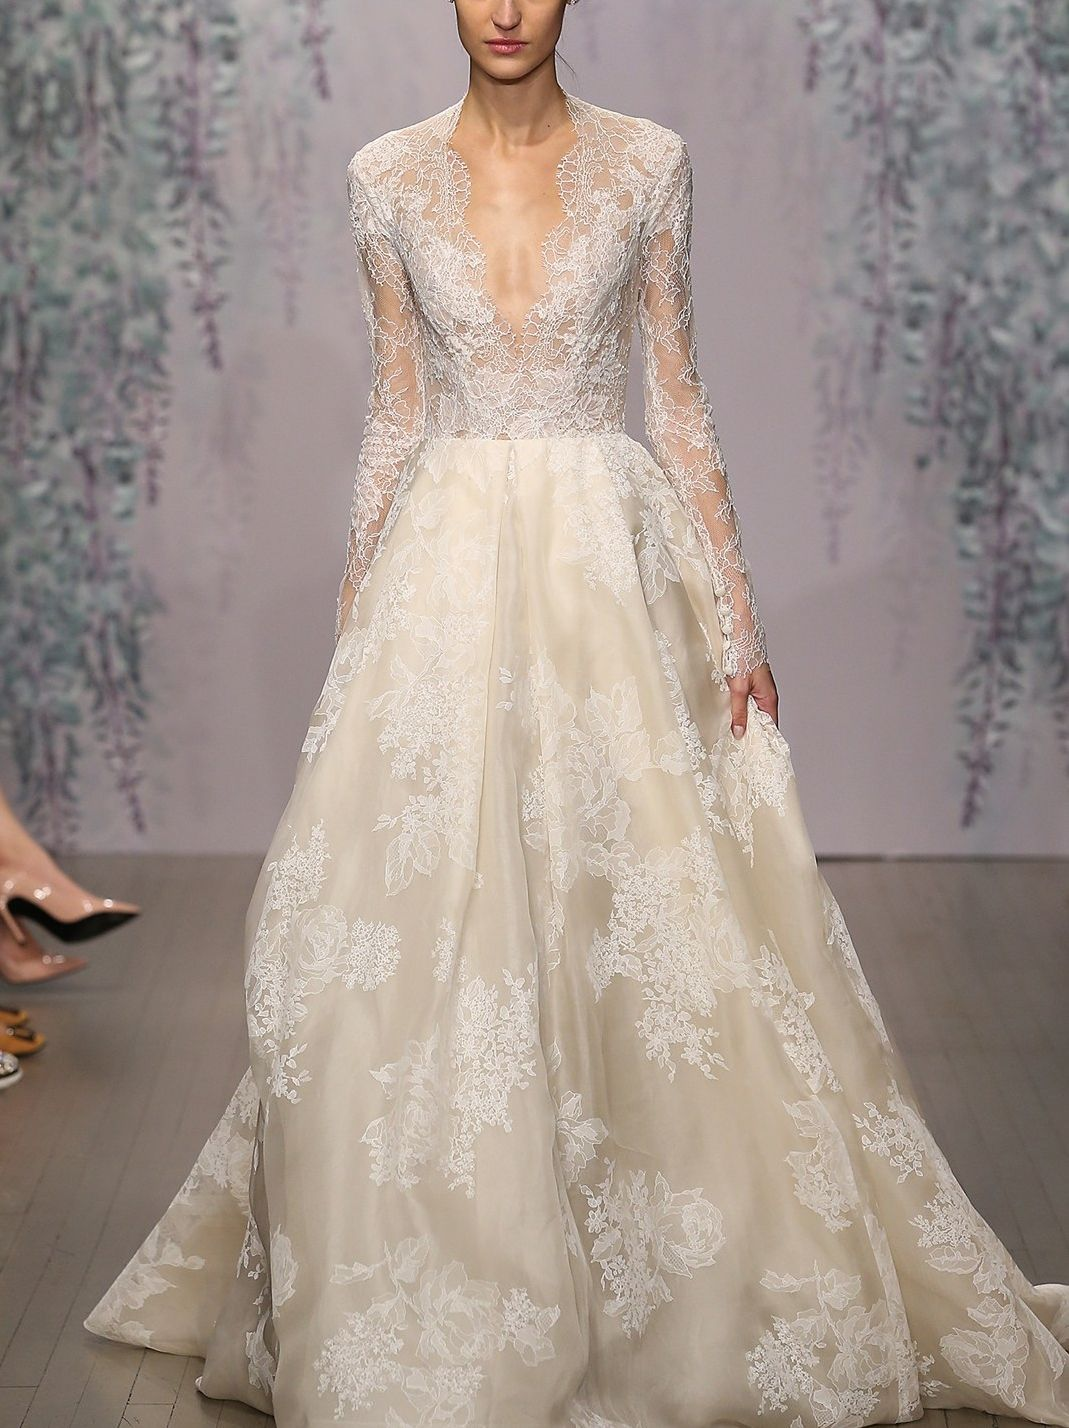 The iconic romance of a long-sleeve gown takes a modern, sultry tw ...